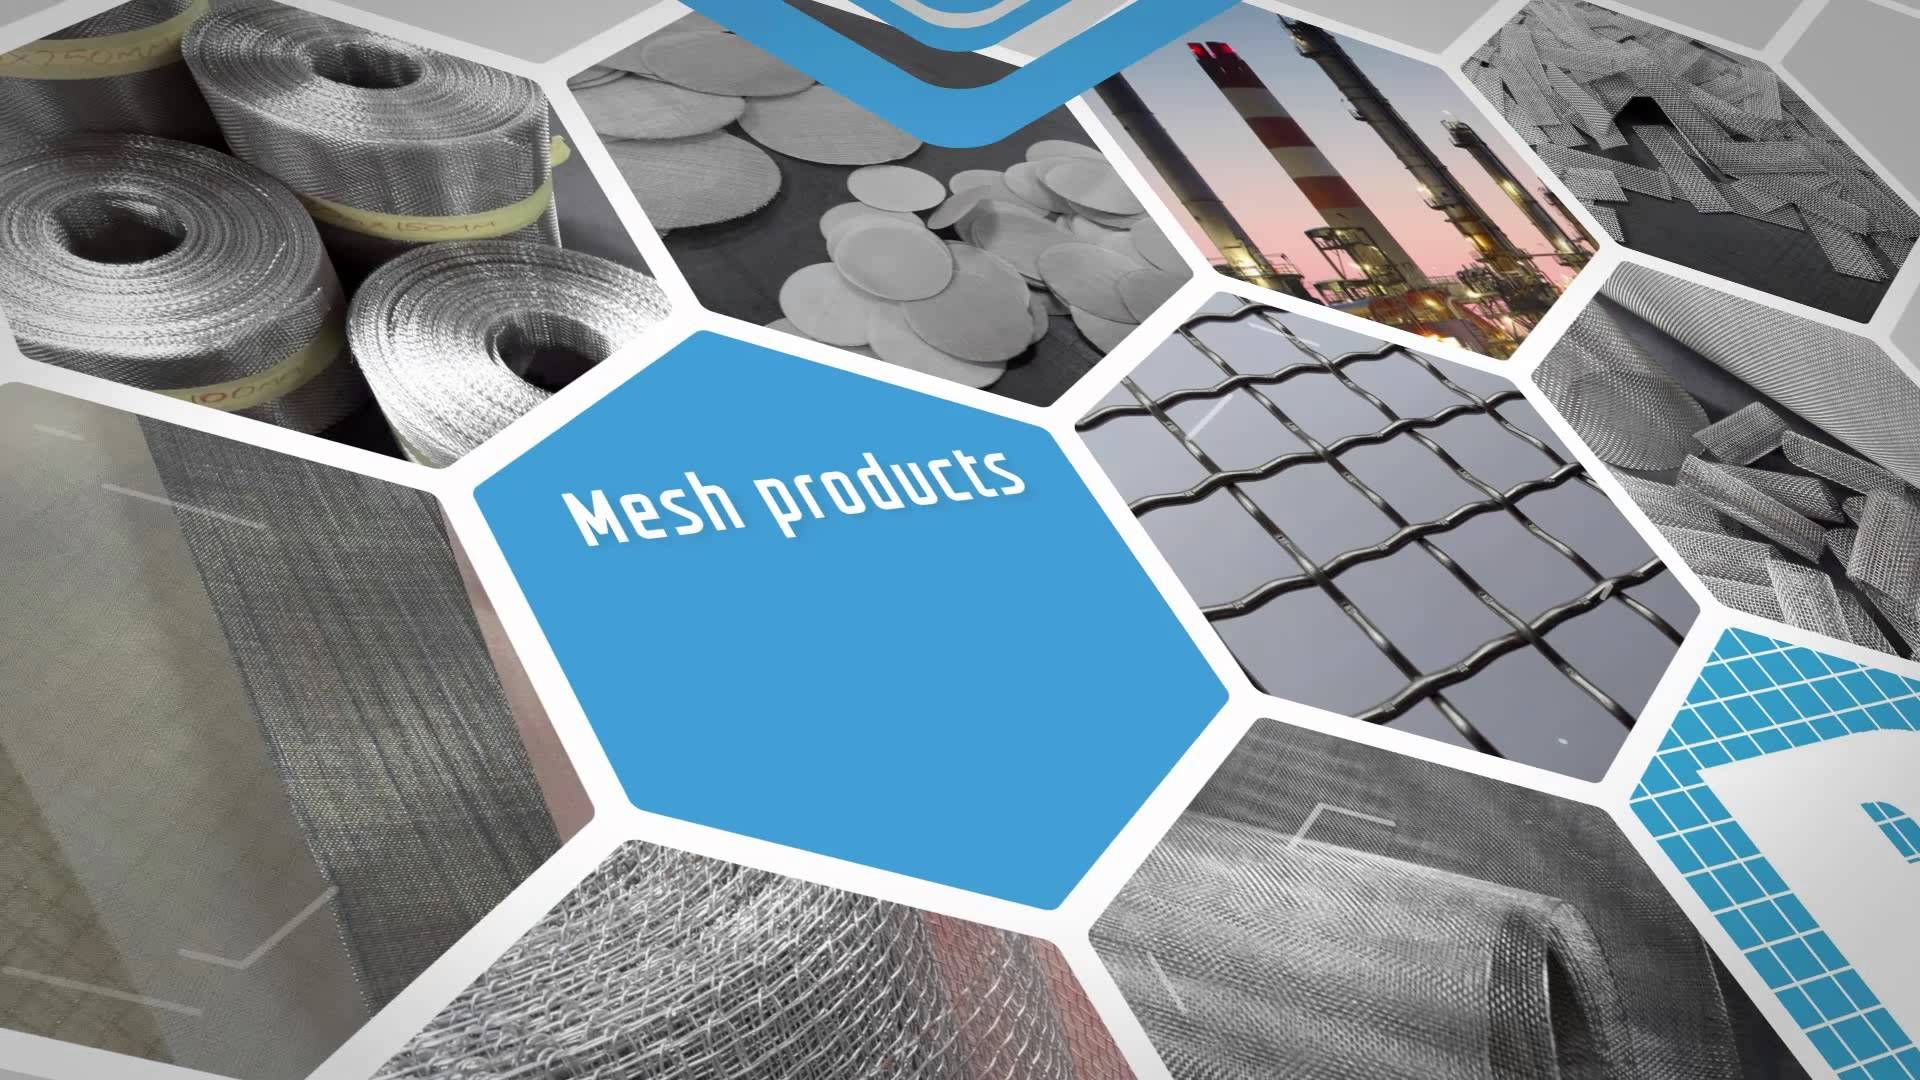 Pin by HIGHTOP METAL MESH on Wire Mesh Discs | Pinterest | Wire mesh